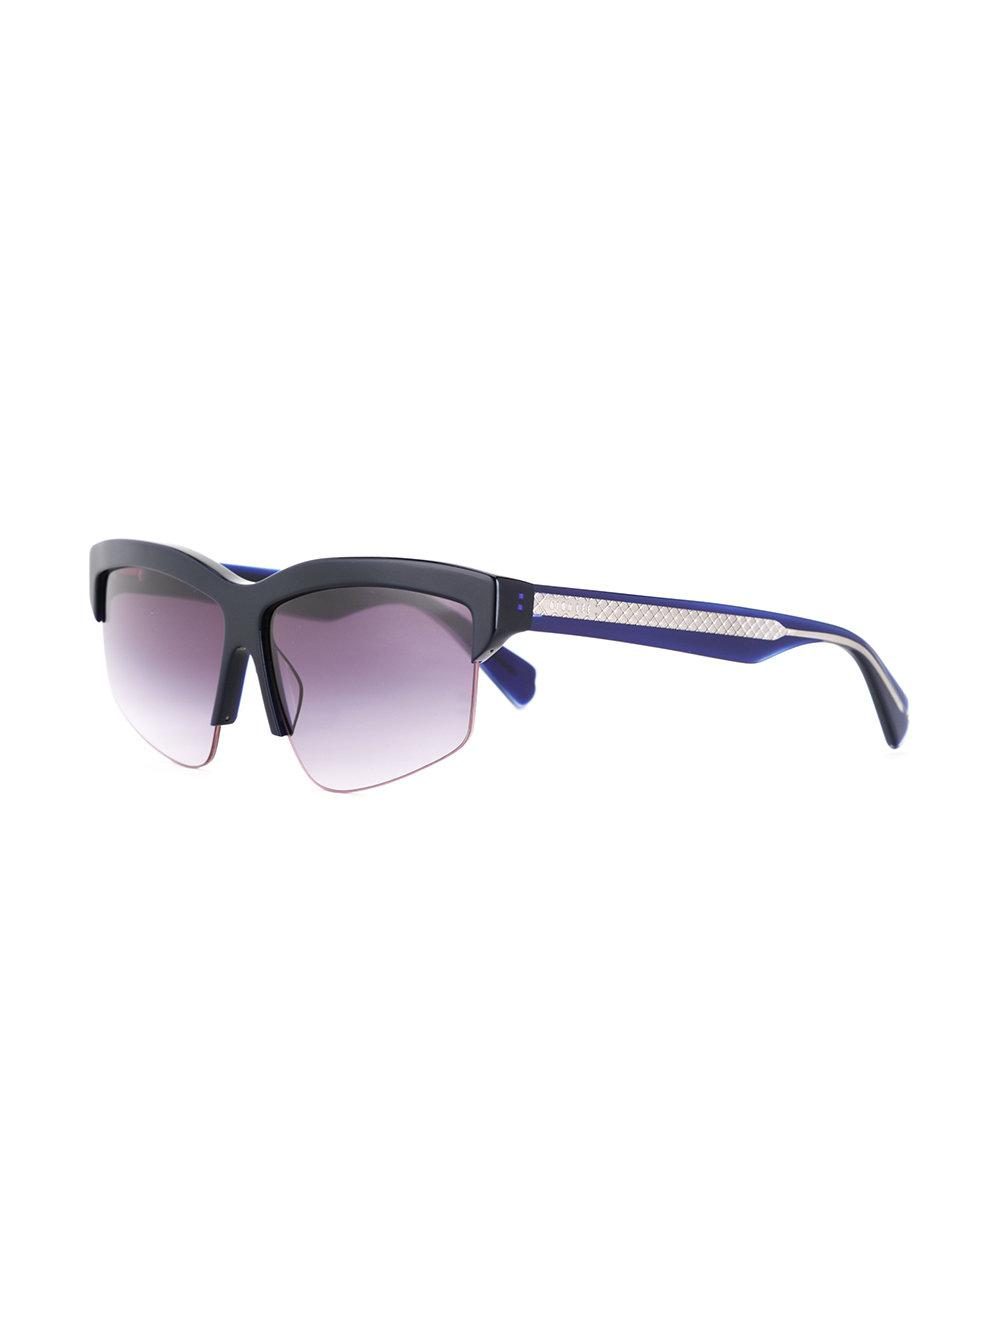 969ffbe2abb1 Lyst - Dion Lee Shiny Sunglasses in Blue